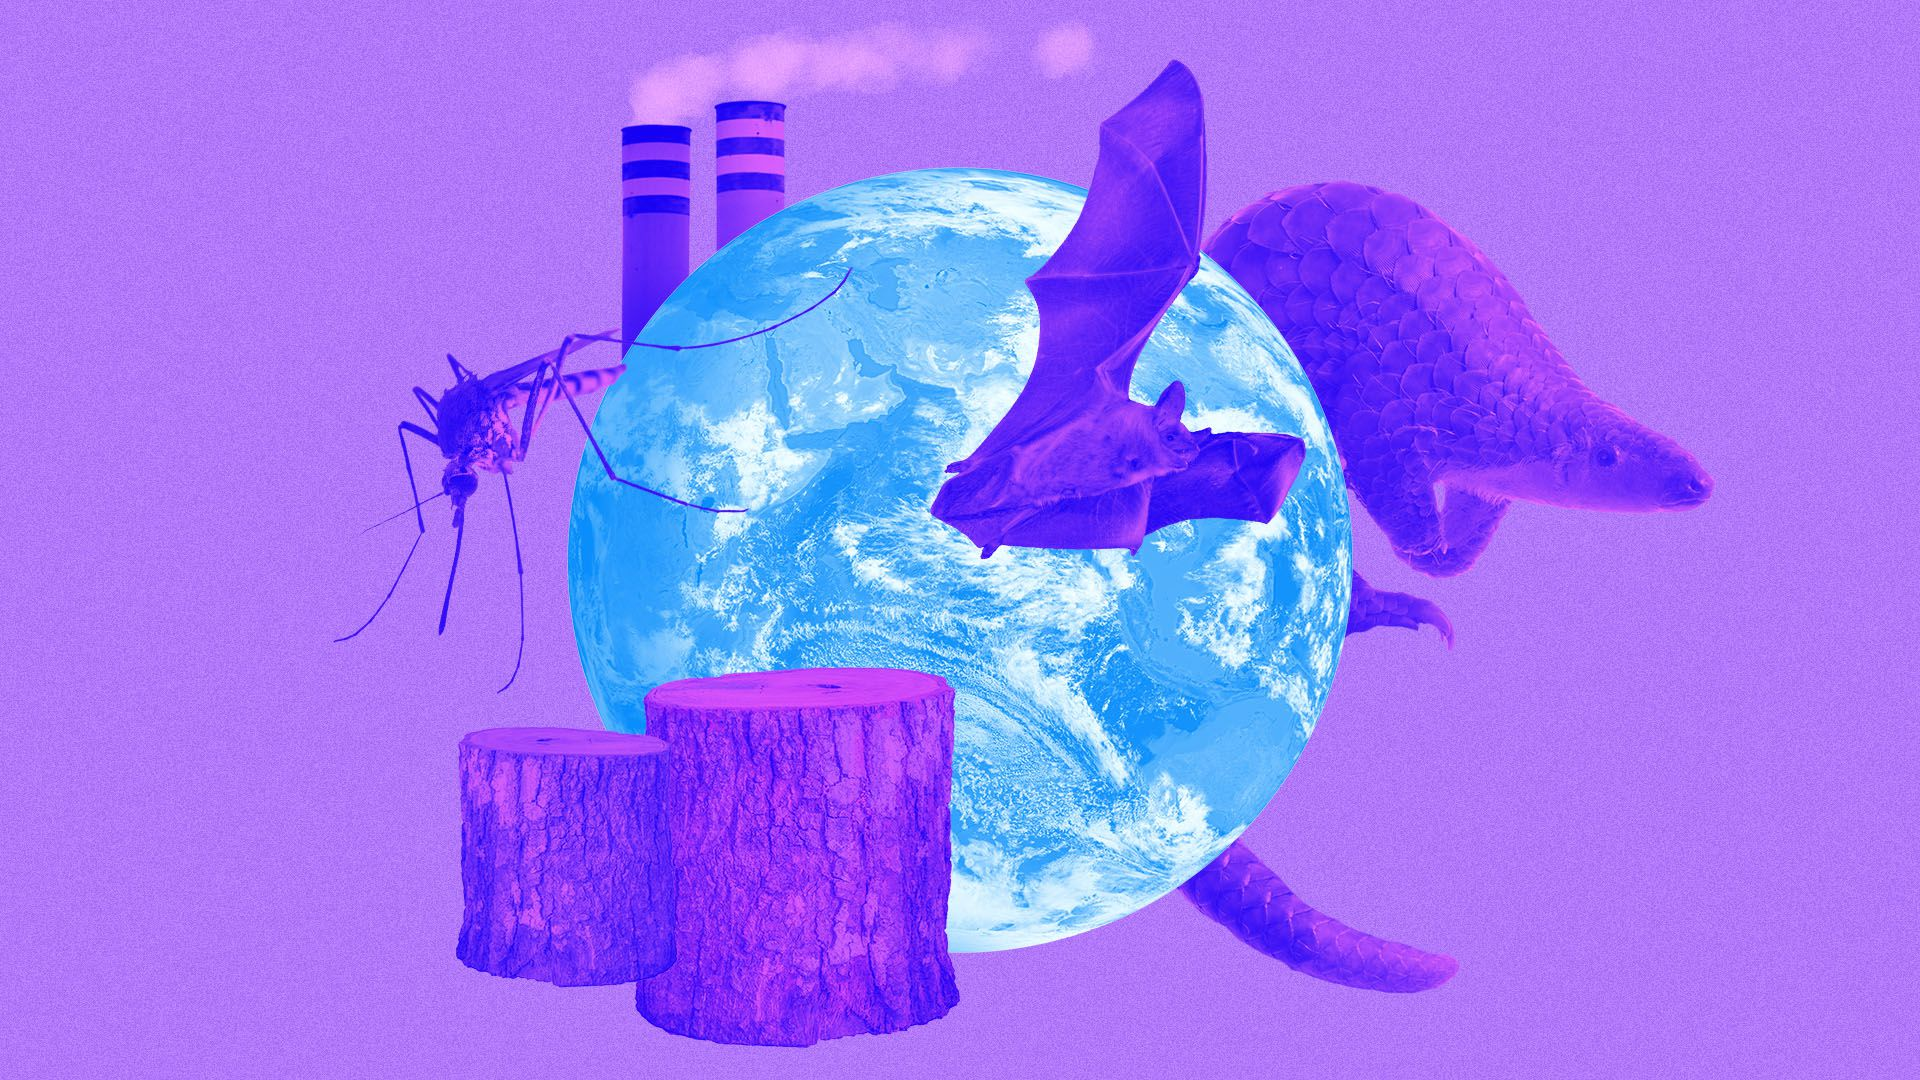 Illustrated collage of the earth surrounded by smoke stacks, a bat, a mosquito, a pangolin, and tree stumps